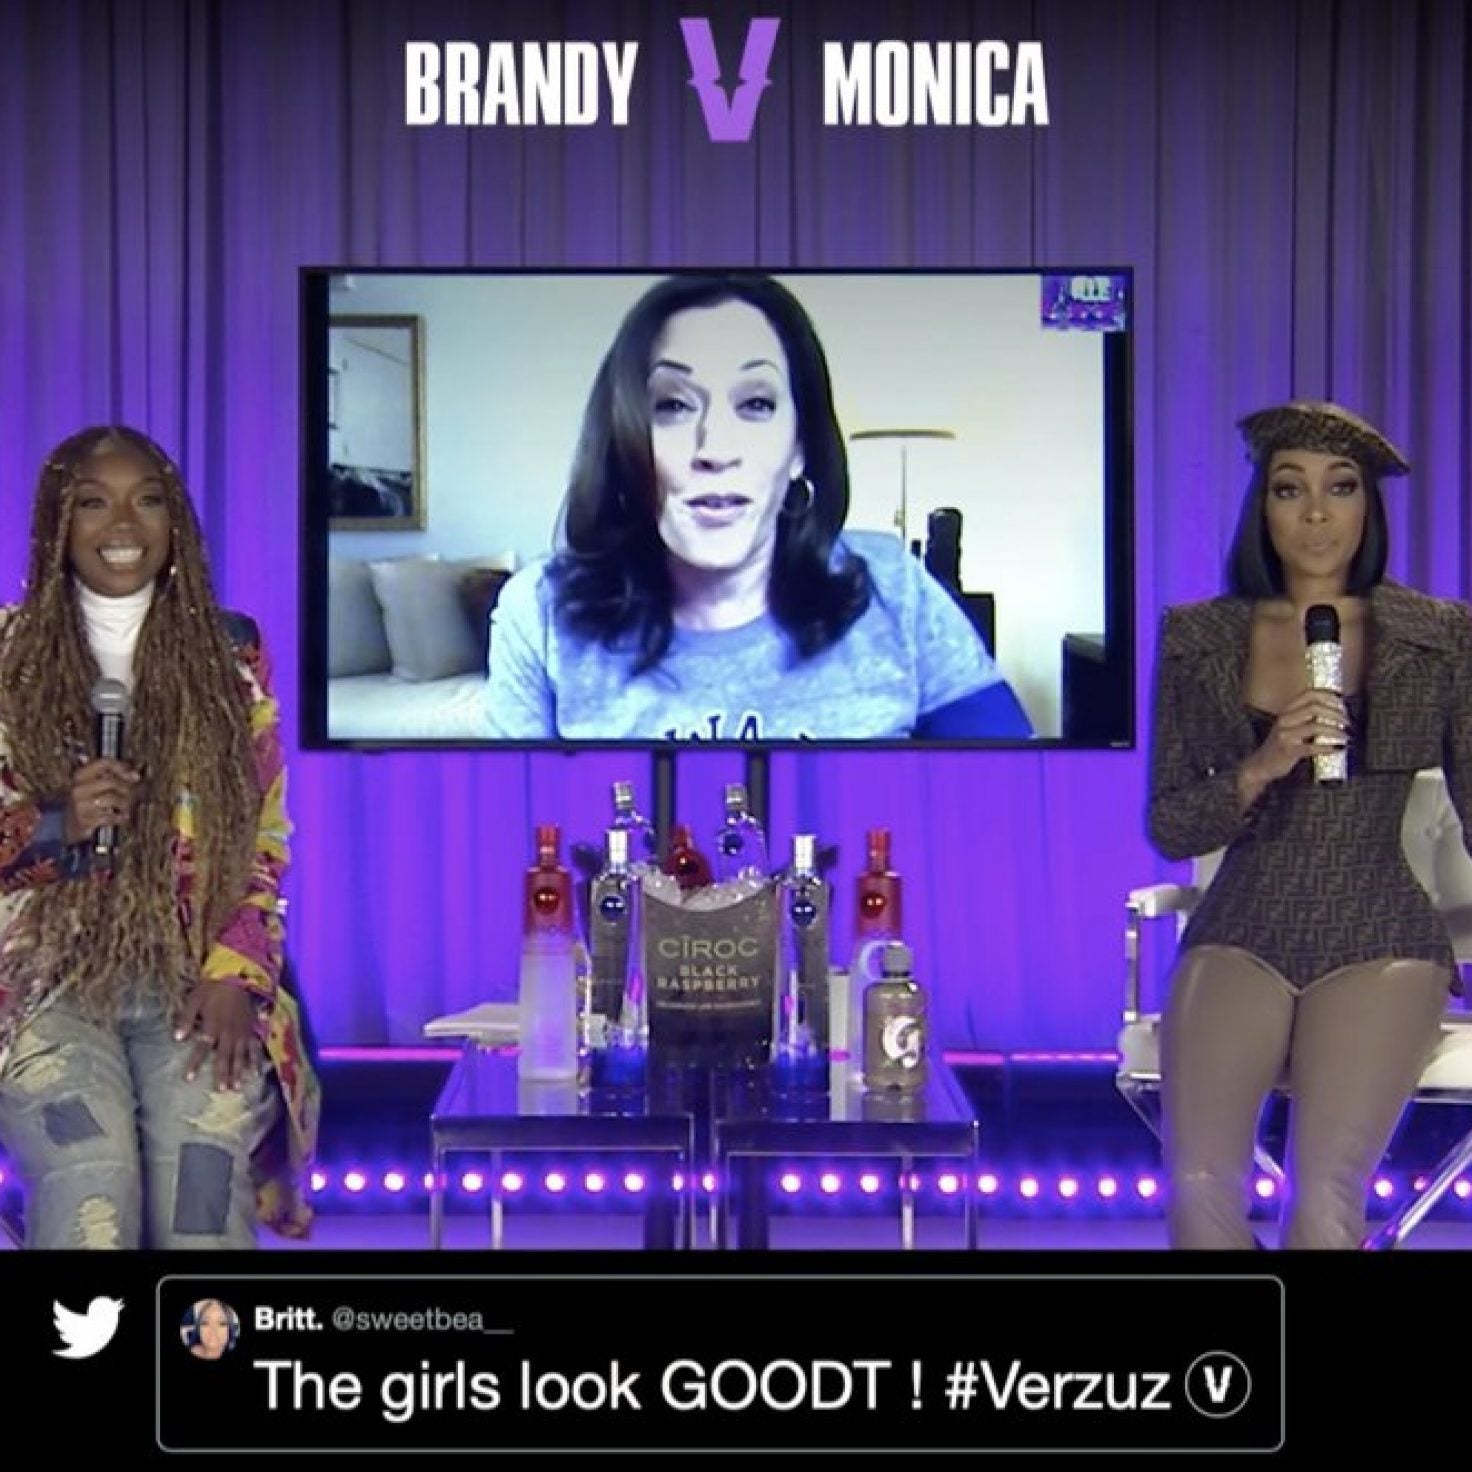 Brandy And Monica's Verzuz Battle Kicks Off With A Kamala Harris Cameo